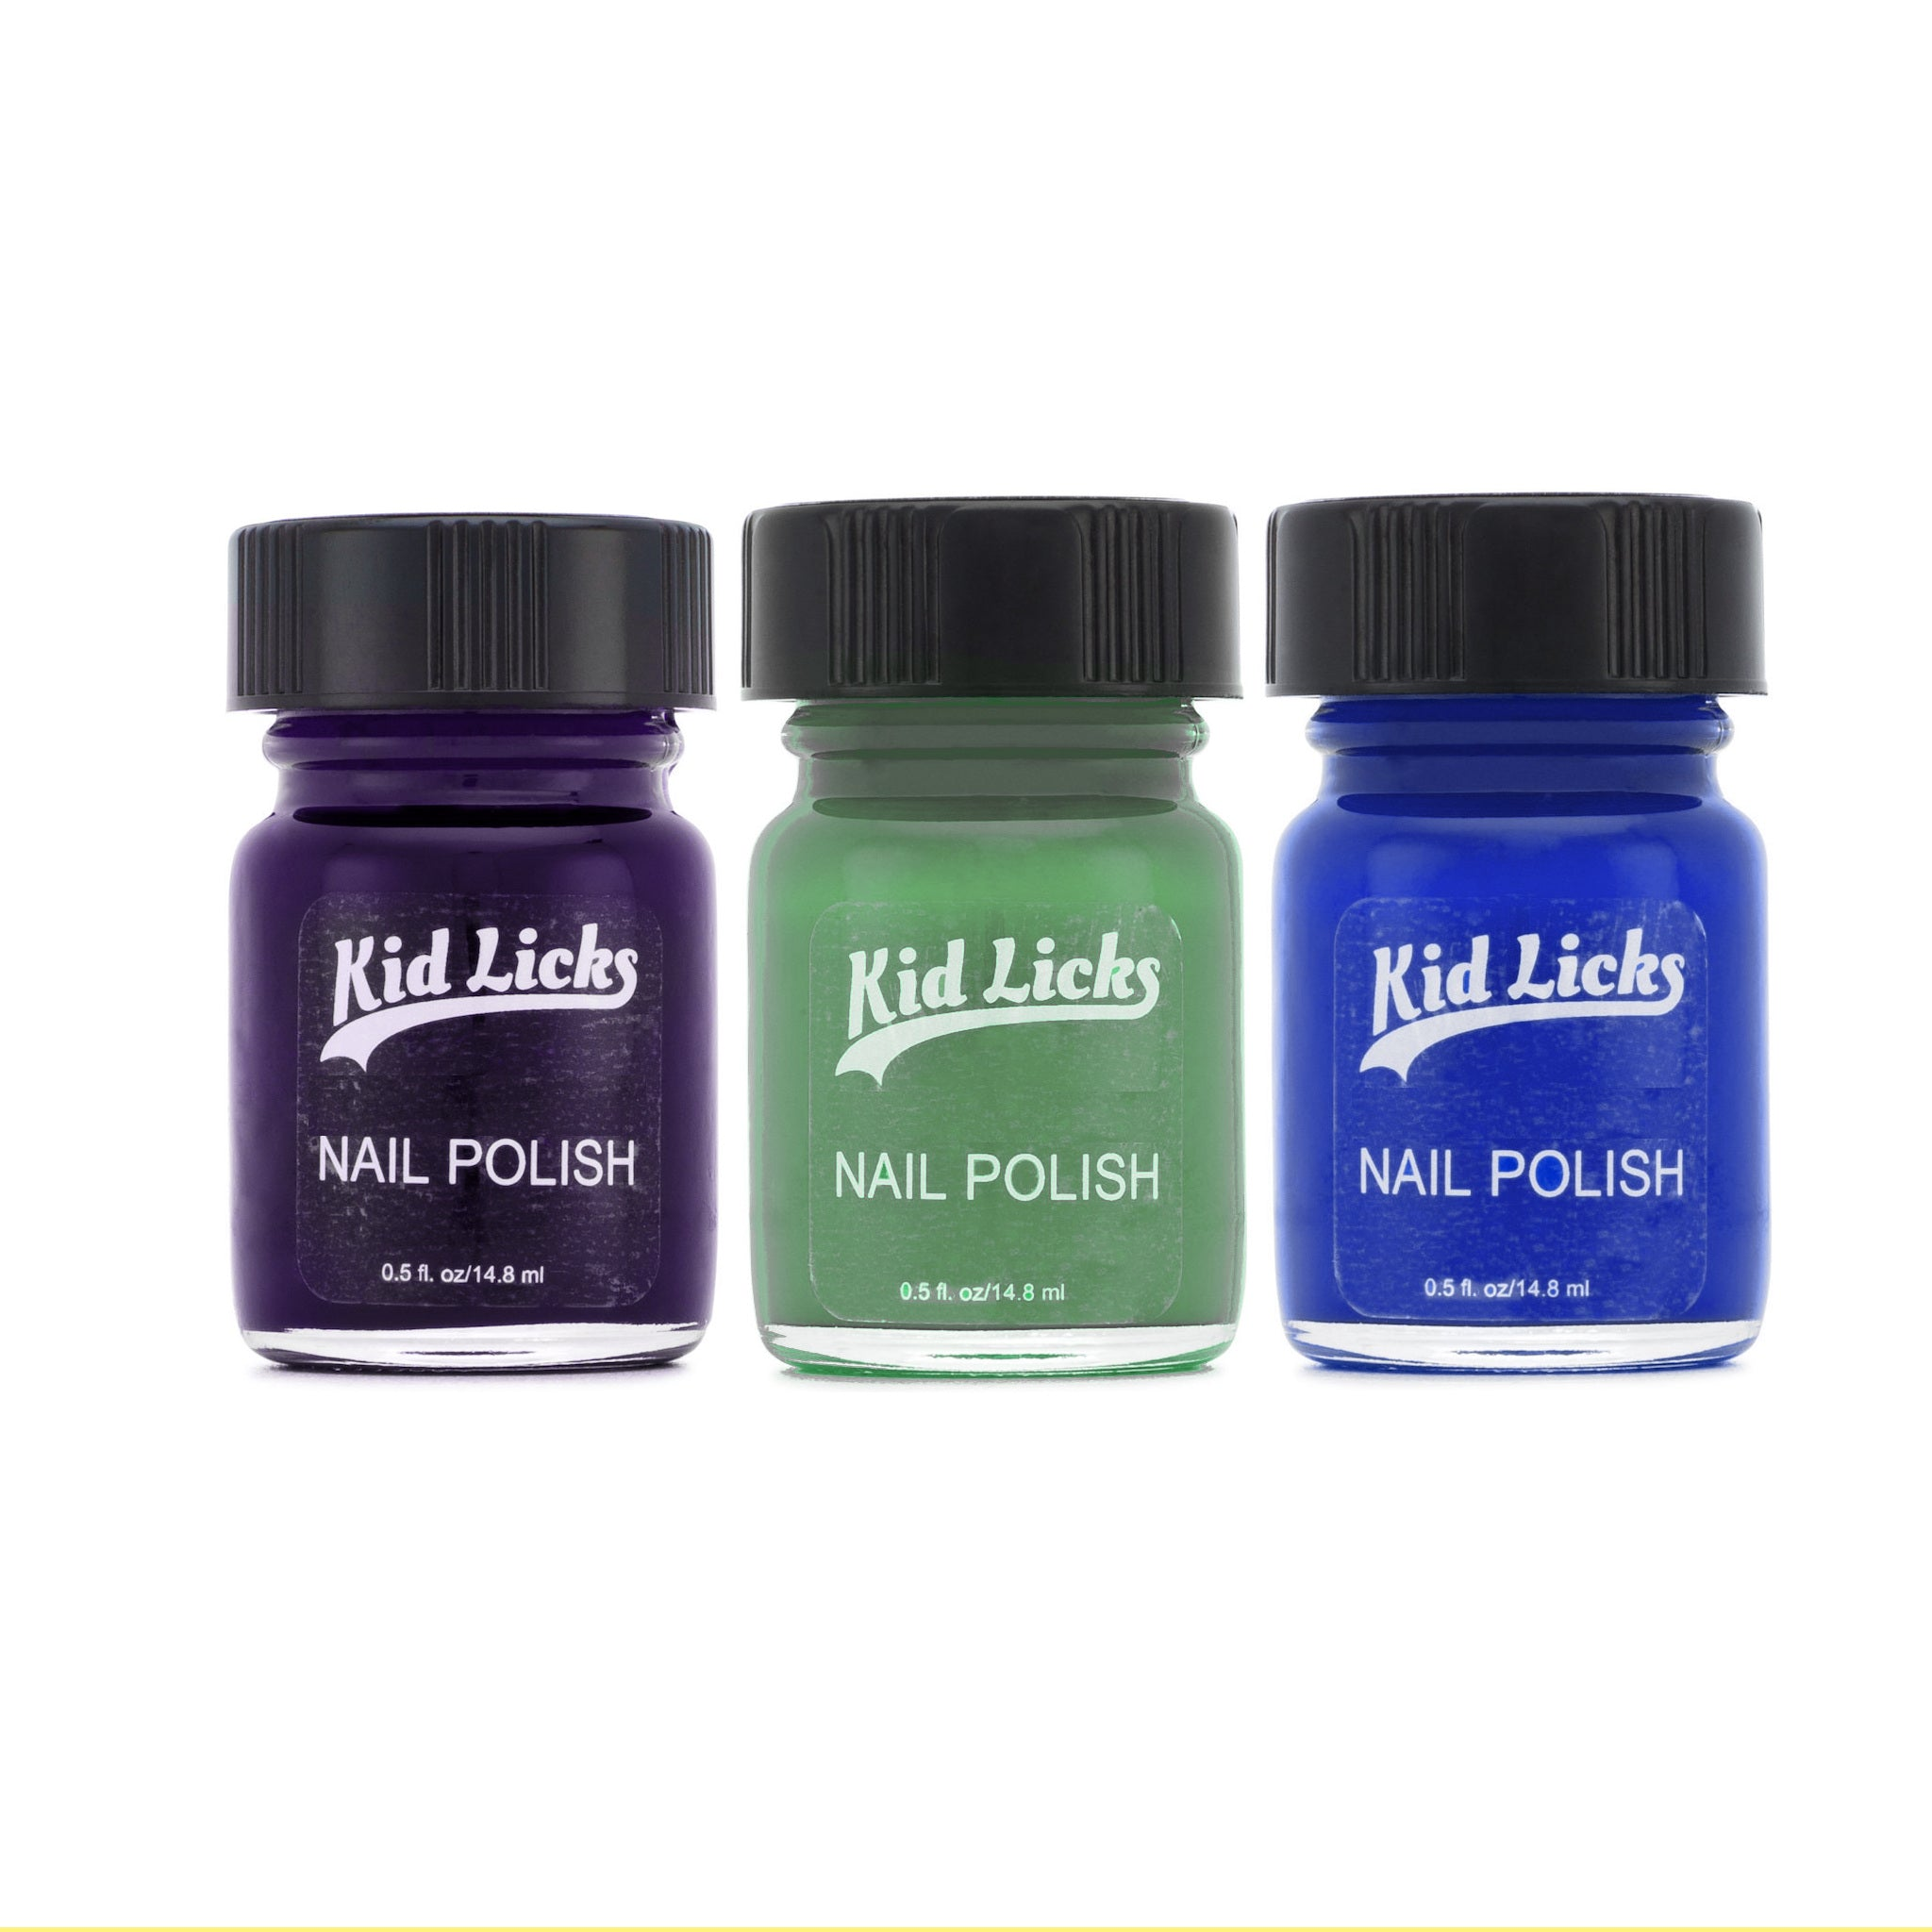 Cool Color Party Pack - 3 Edible Ingredient Nail Polish Colors